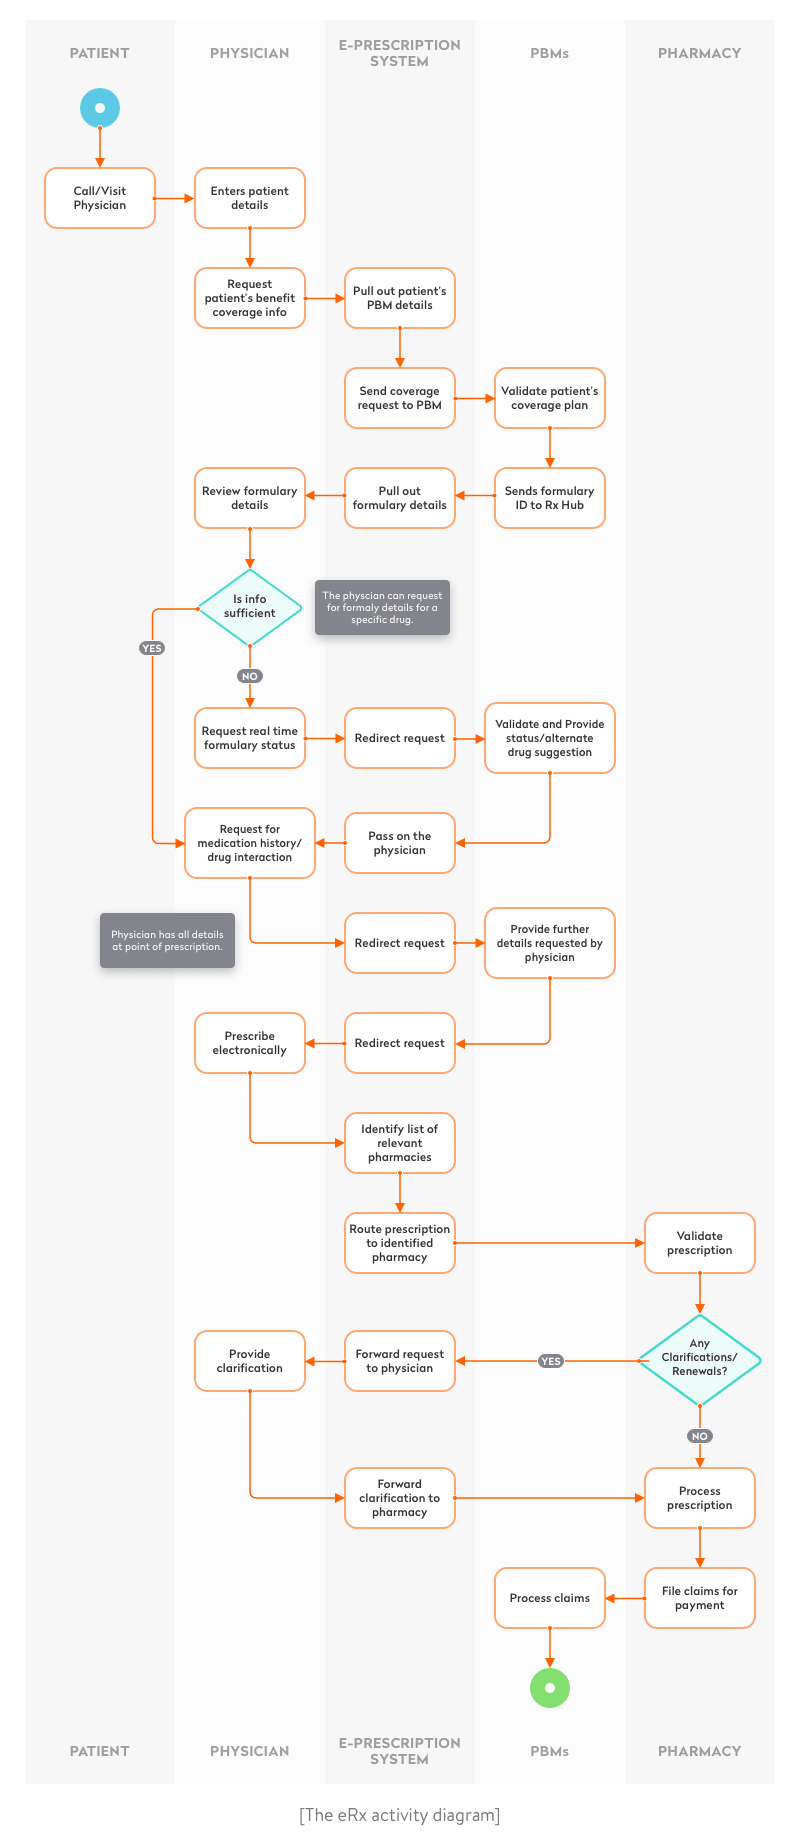 How to develop an eRx web or mobile app: an eRx system activity diagram